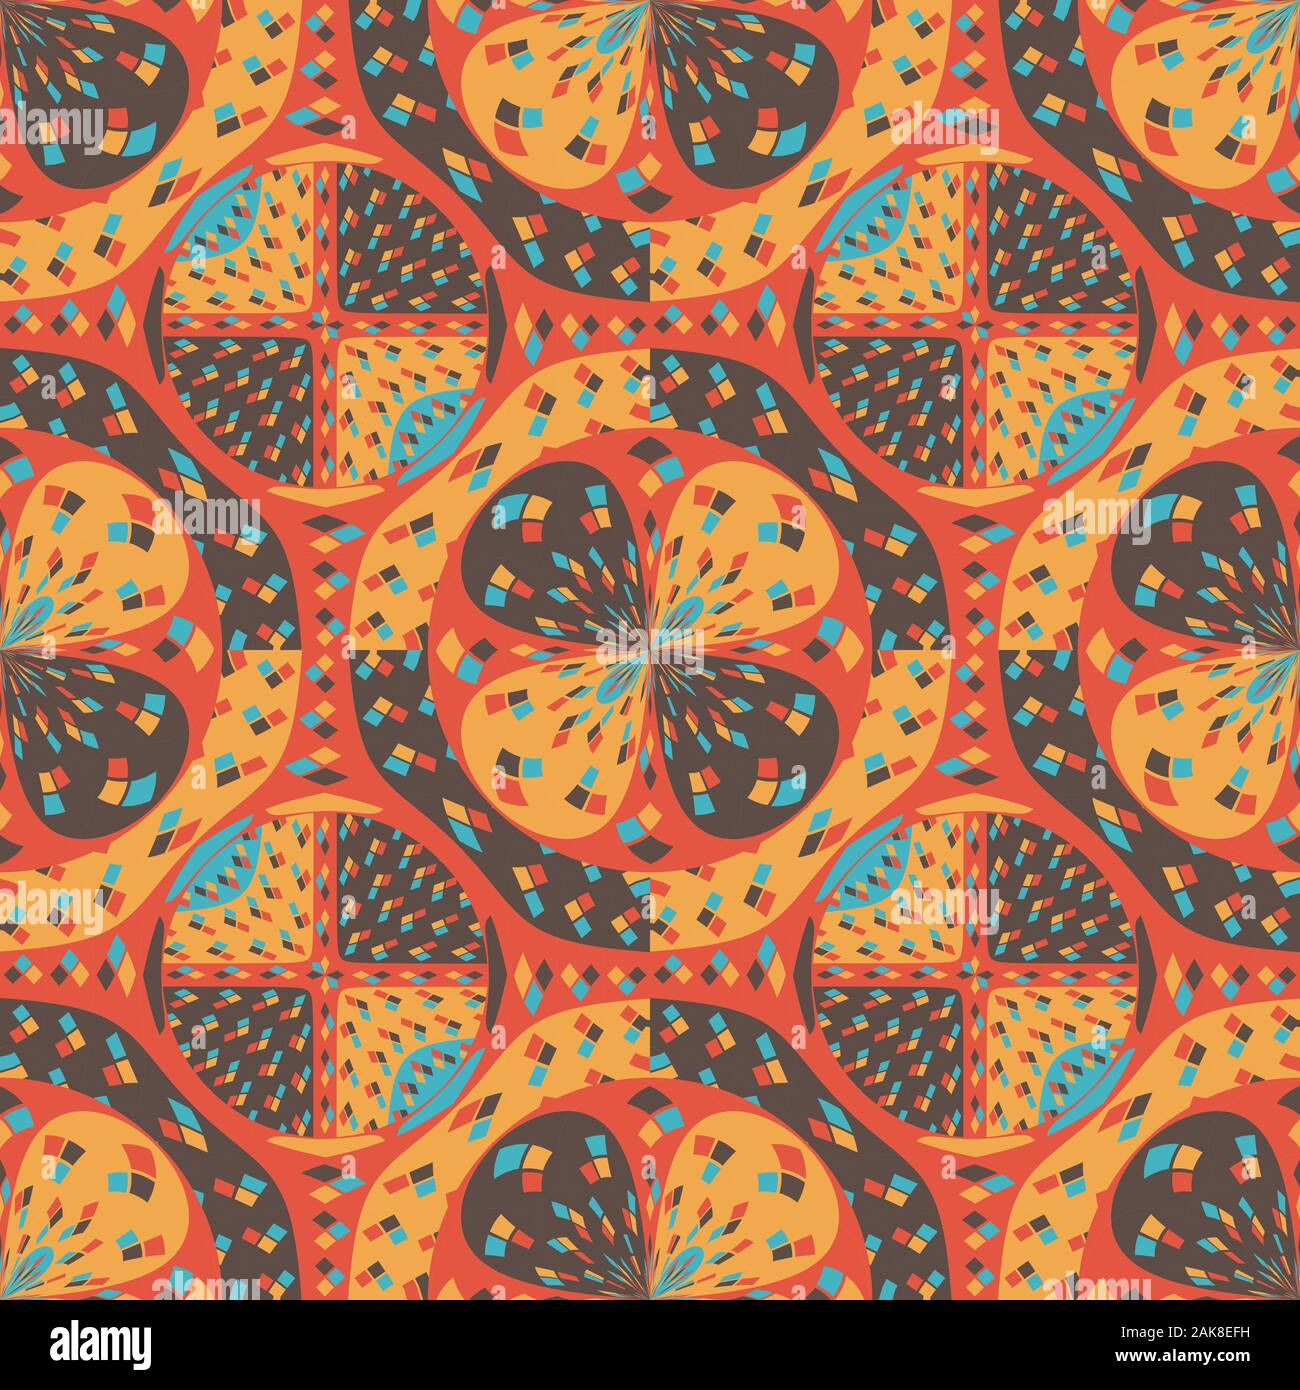 Saturated tapestry-like algorithmic pattern in mostly orange and yellow tones. Geometric digital art. Stock Photo